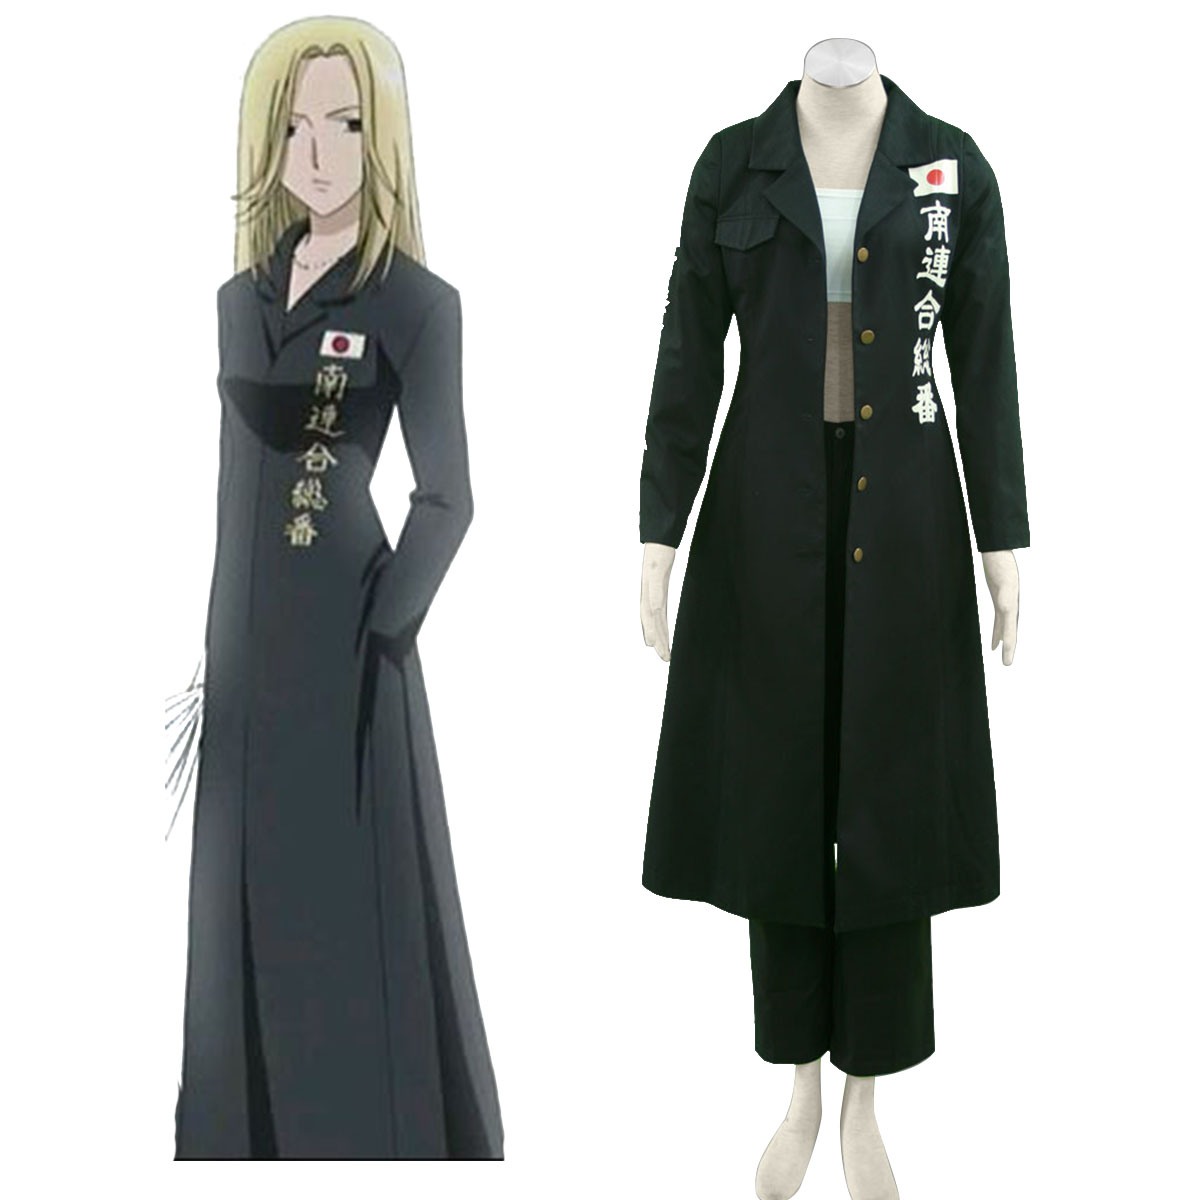 Fruits Basket Uotani Arisa Cosplay Costumes NZ